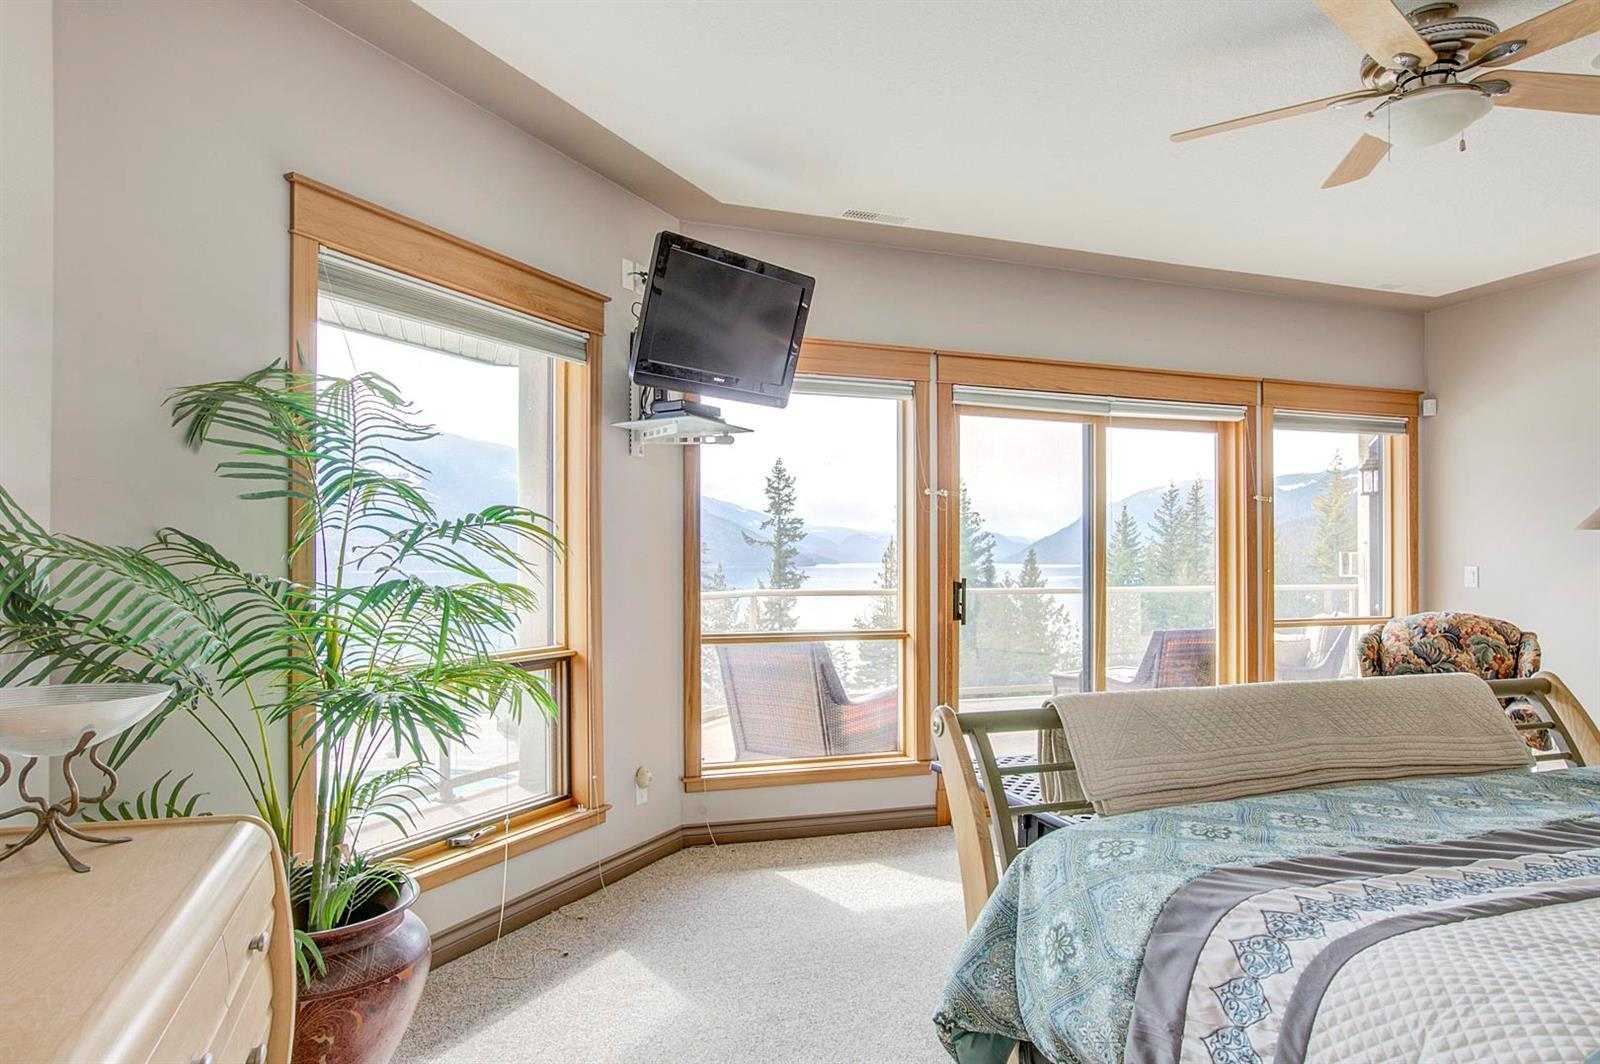 #203 3473 Lakeview Place,, Enderby, British Columbia  V0E 1V5 - Photo 25 - 10229003